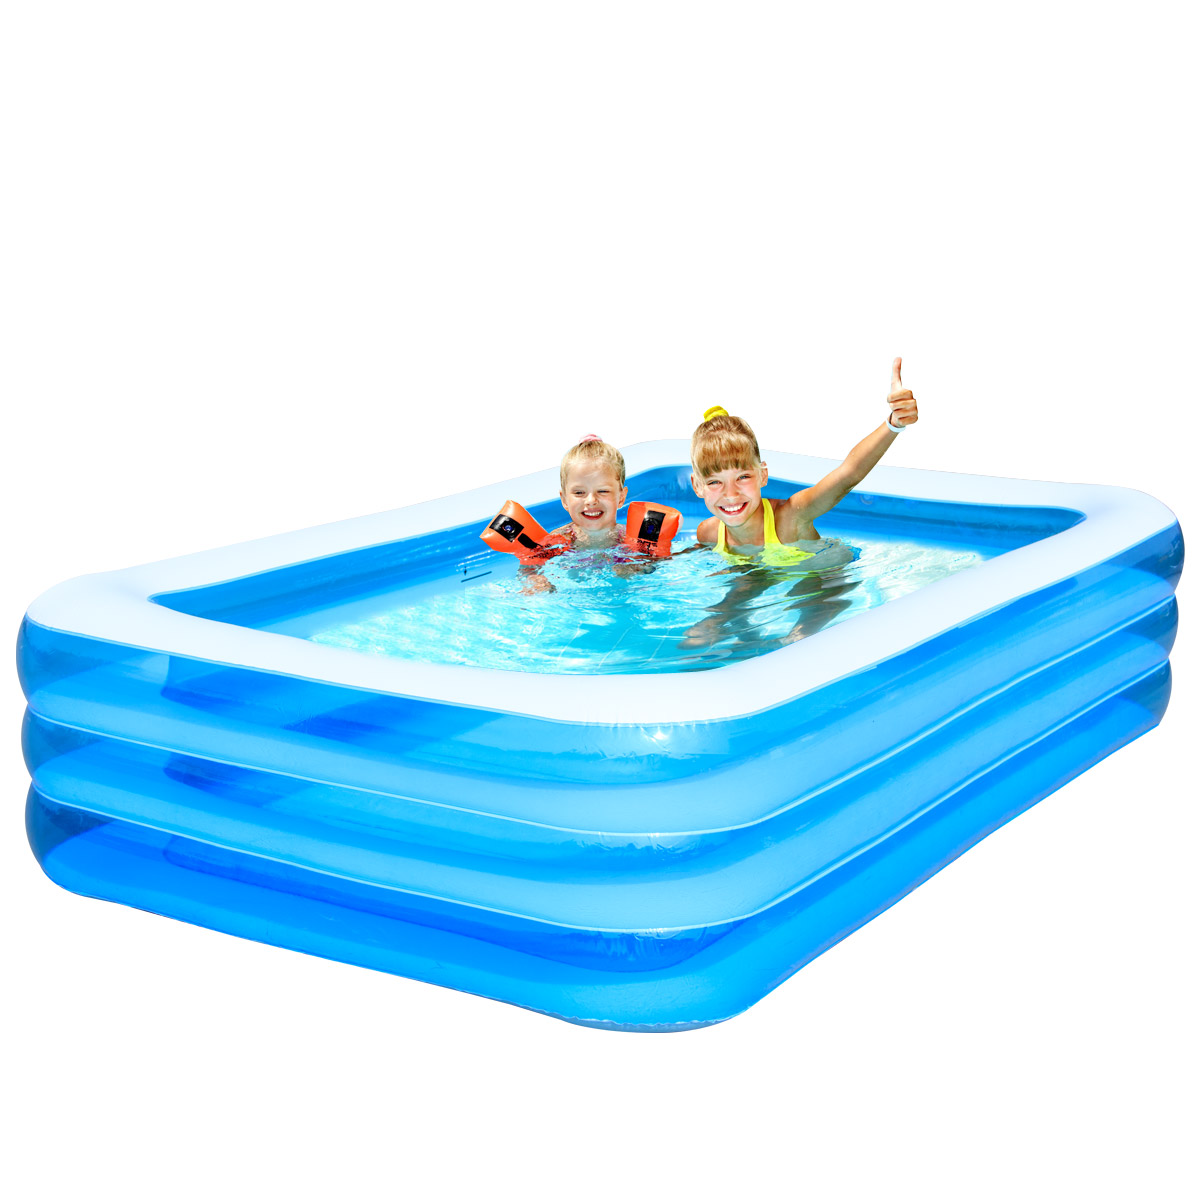 Piscine gonflable prix for Prix piscine gonflable